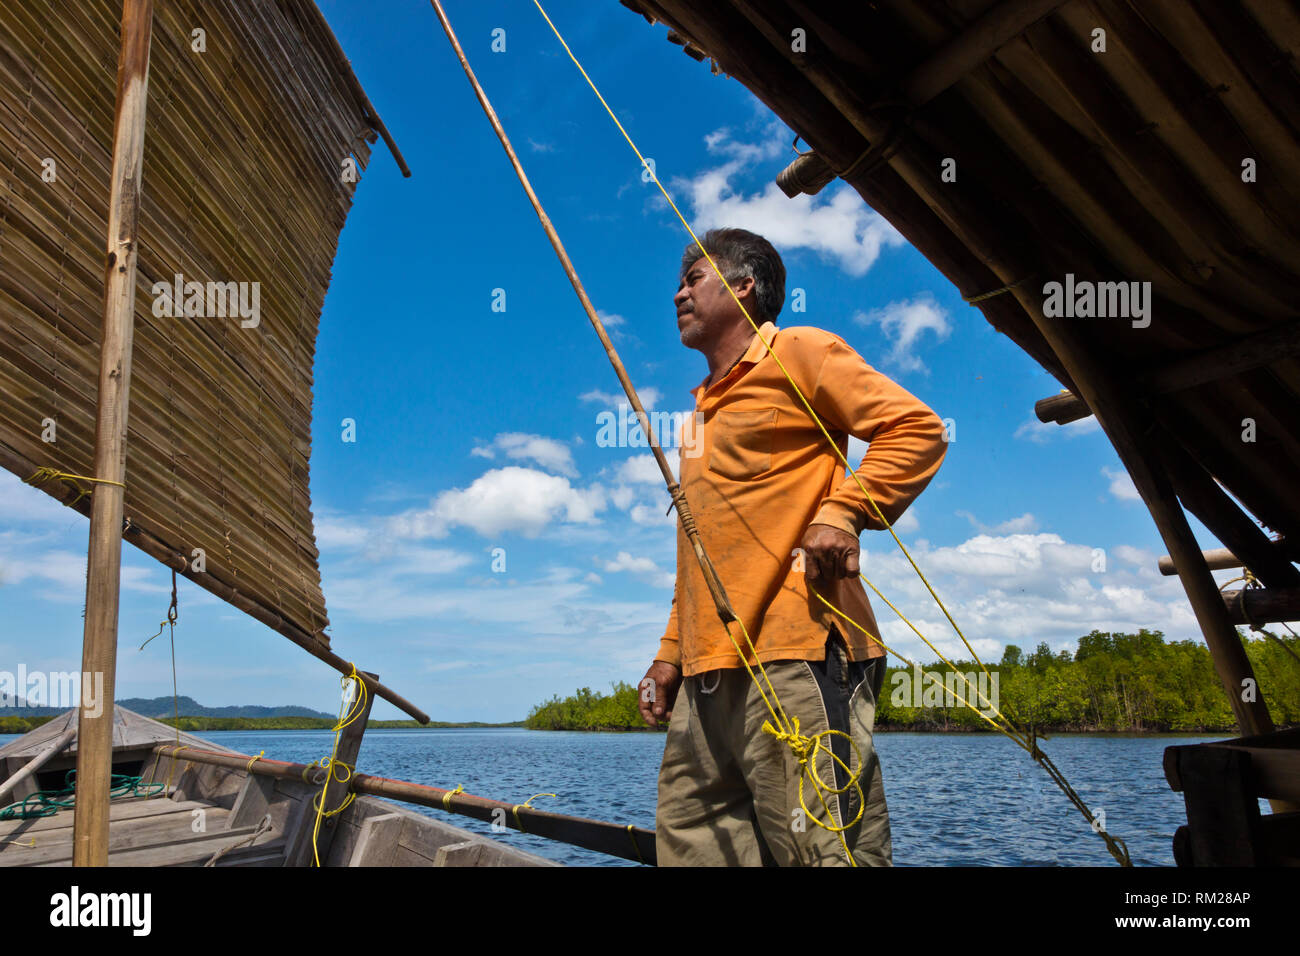 A MOKEN MAN sails his traditional boat to KHO RA ISLAND in the Andaman Sea - THAILAND - Stock Image